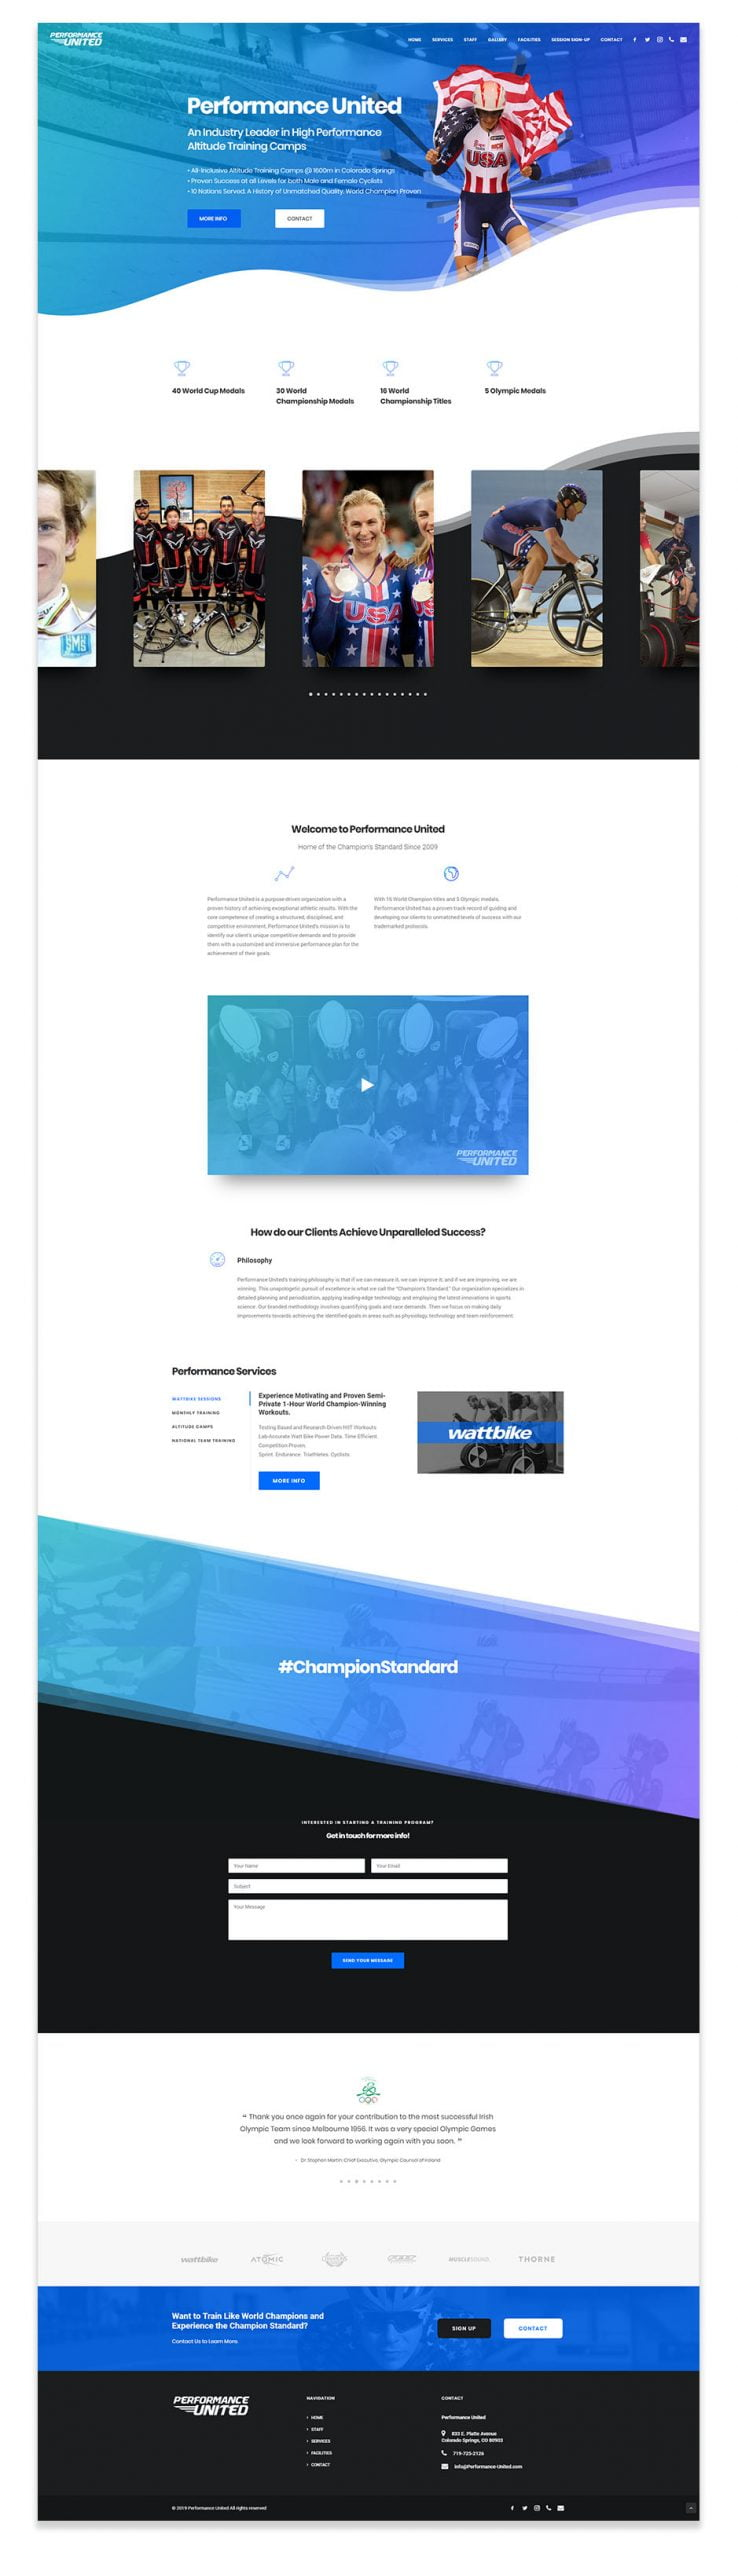 Performance United Website Design - Desktop